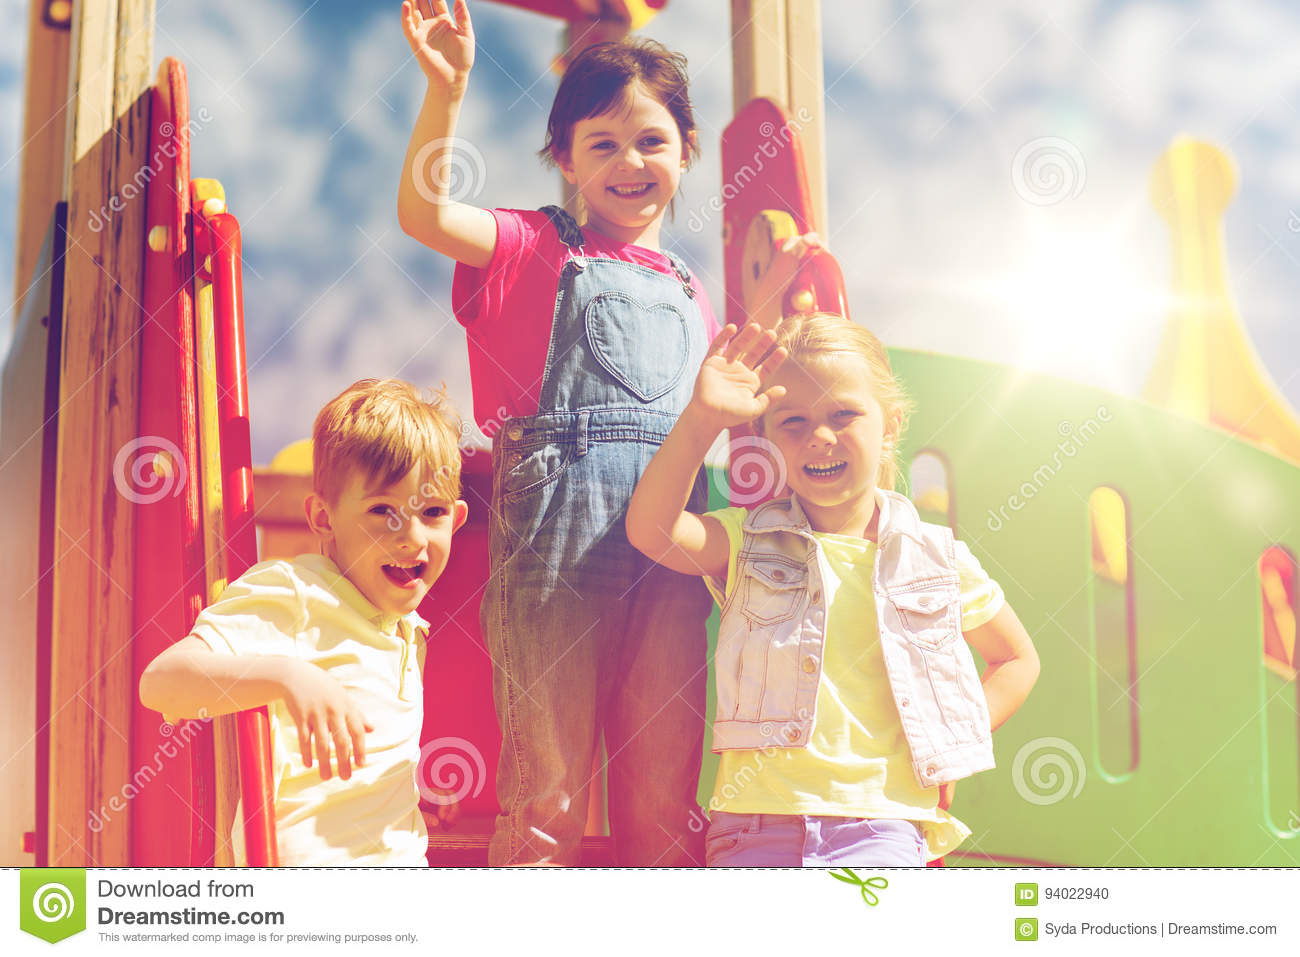 Group of happy kids waving hands on playground